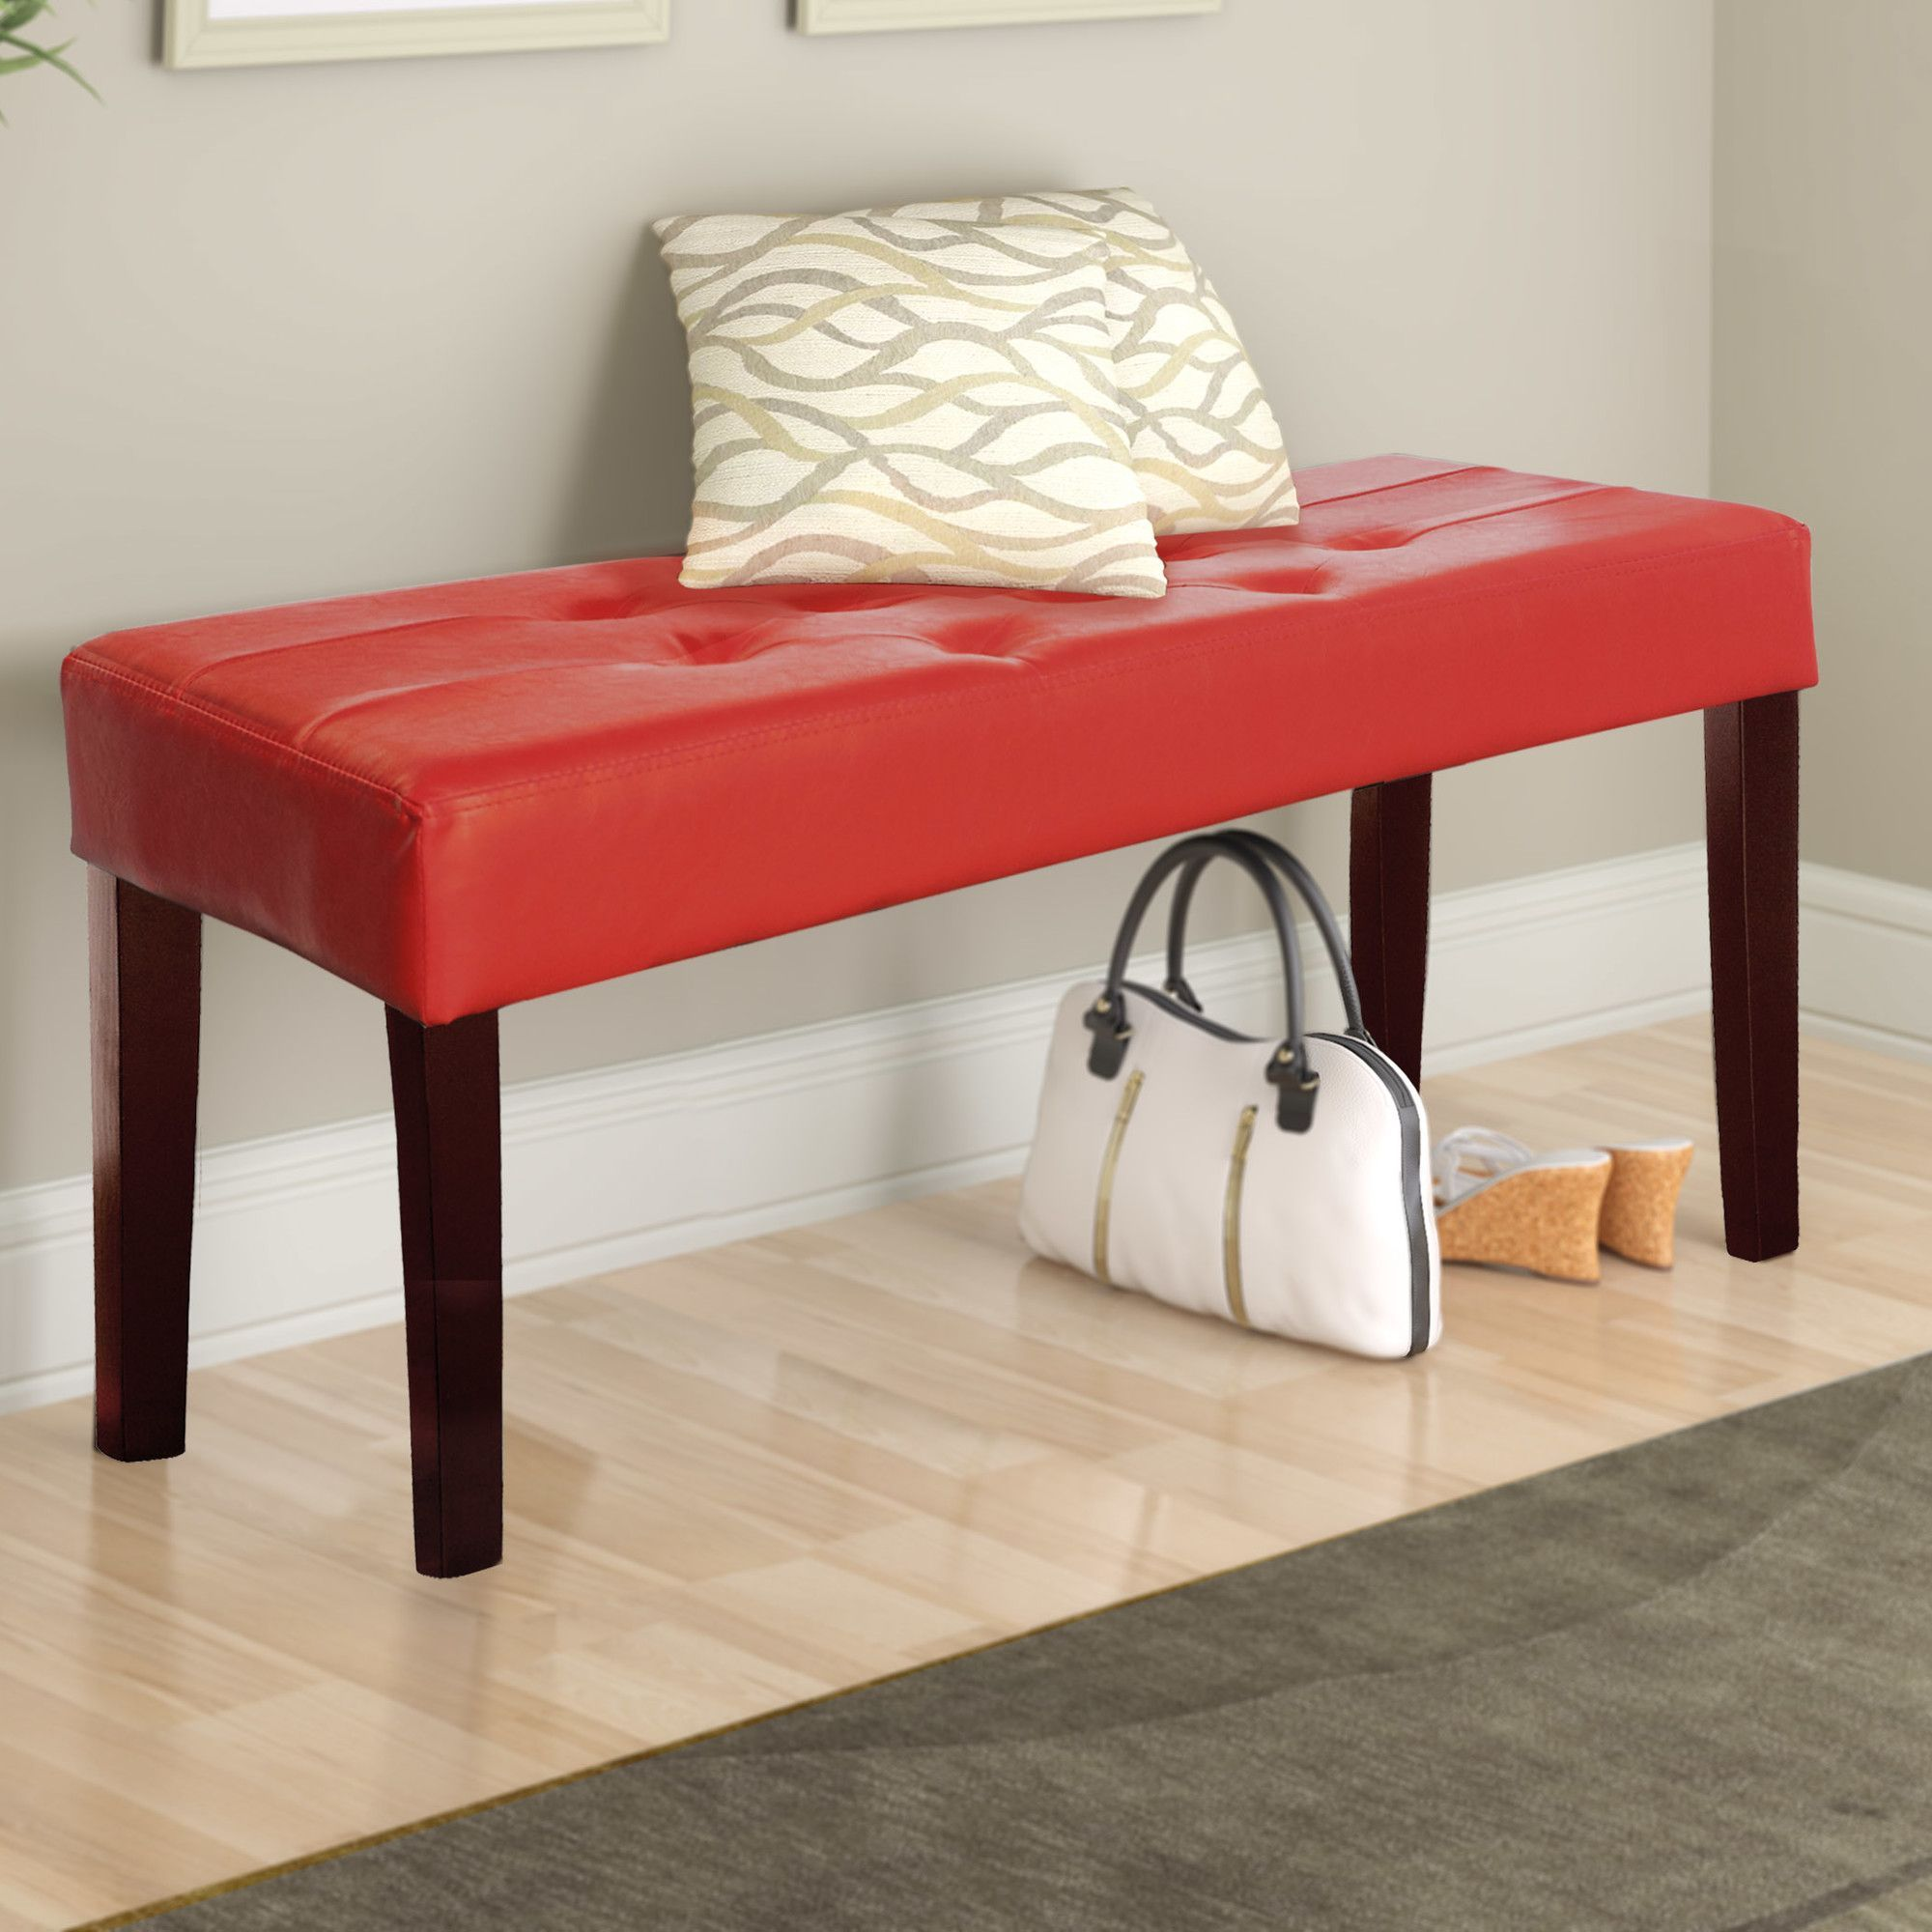 Fresno Upholstered Entryway Bench  Products  Pinterest  Products